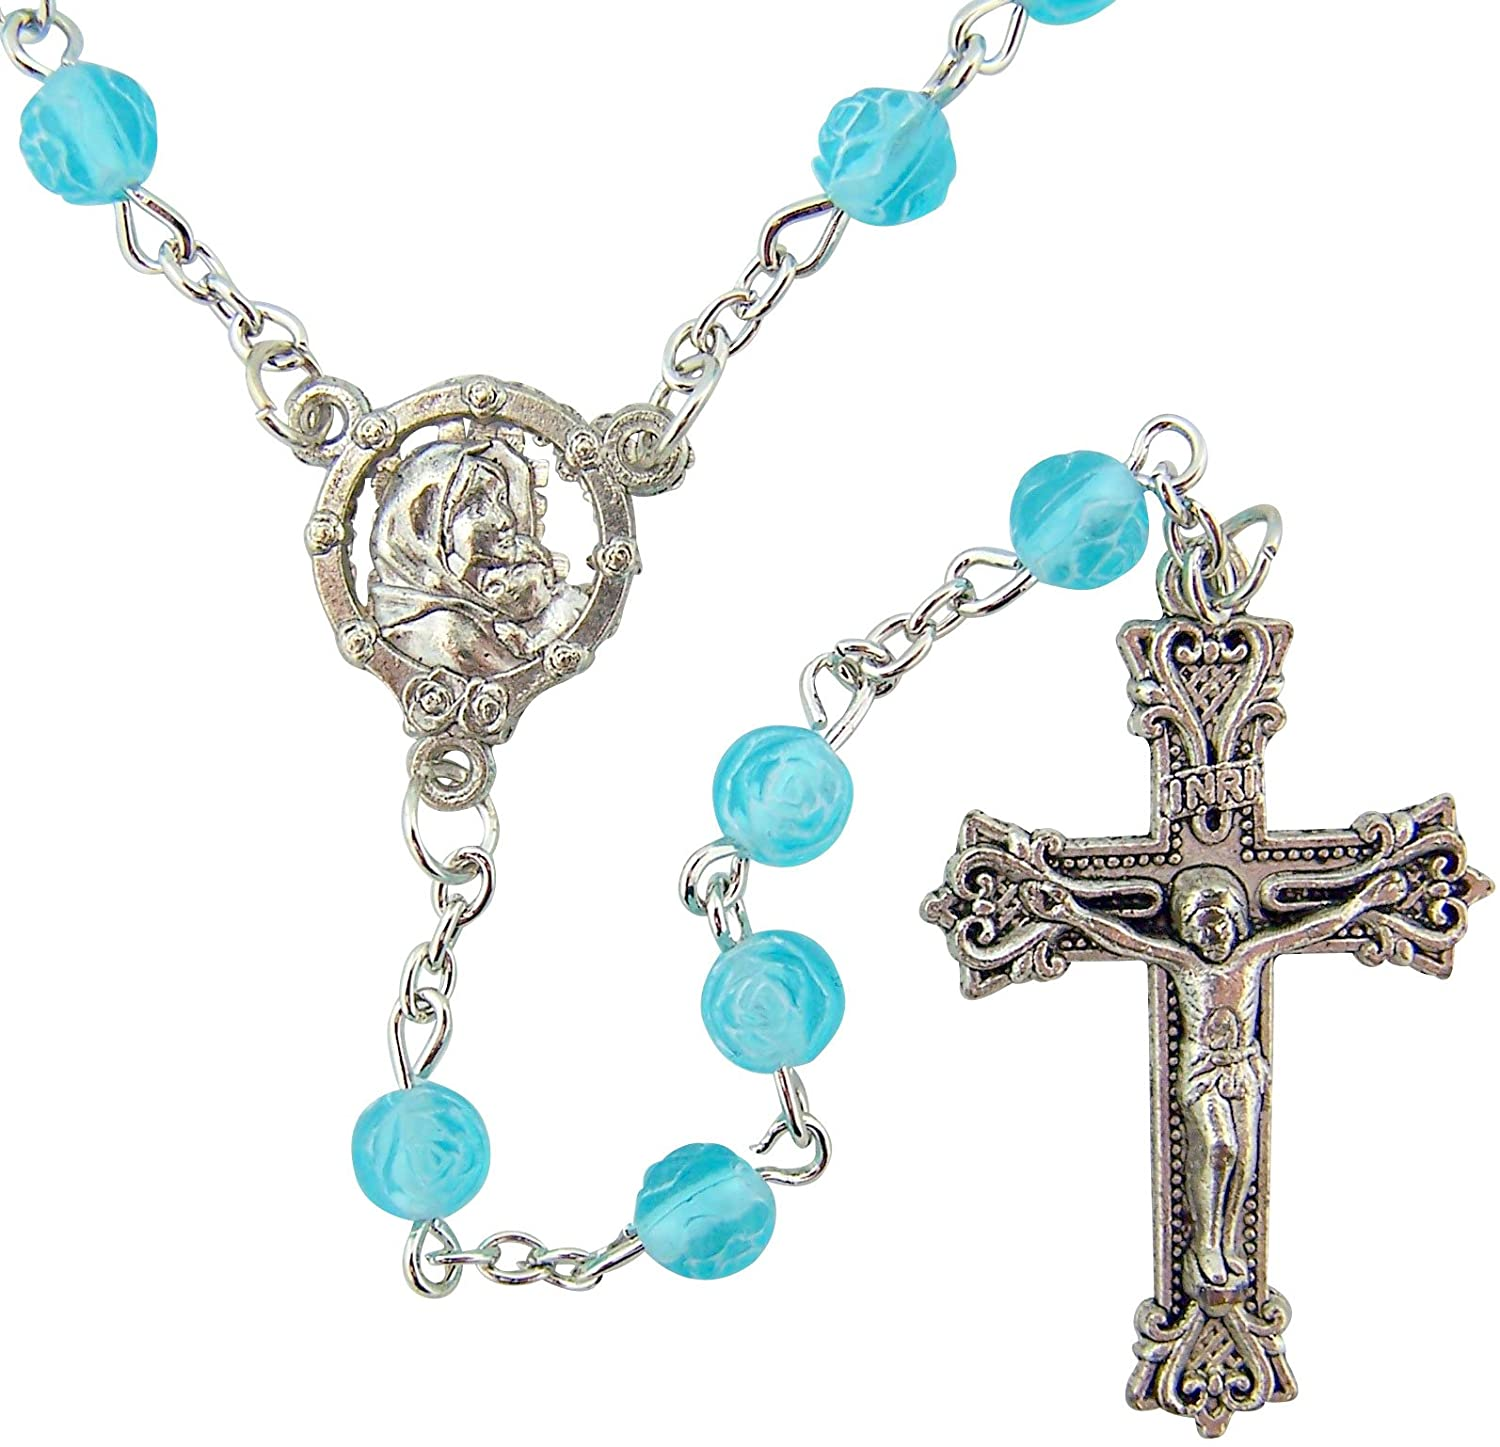 CB Womens Girls Religious Catholic Gift 6mm Acrylic Aqua Blue Rosebud Bead with Silver Tone Madonna of The Streets Center 19 Inch Rosary Necklace